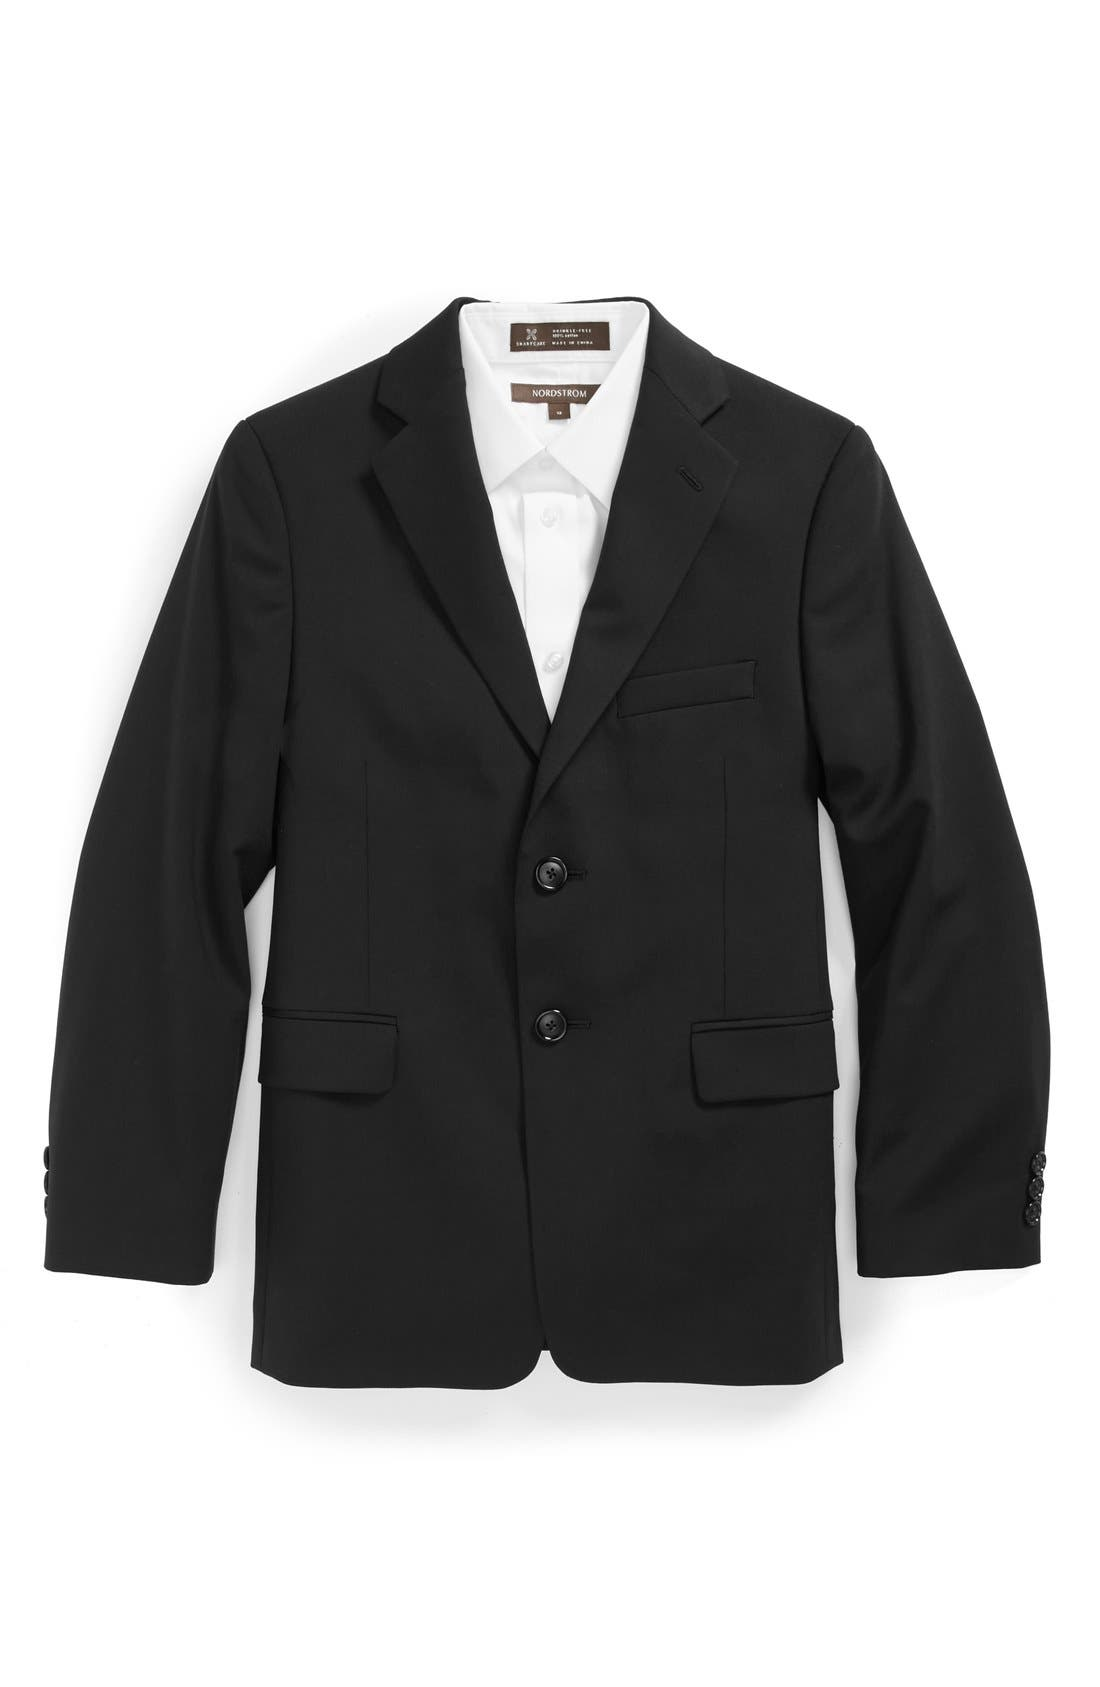 Image of Nordstrom 'Lucas' Classic Fit Jacket